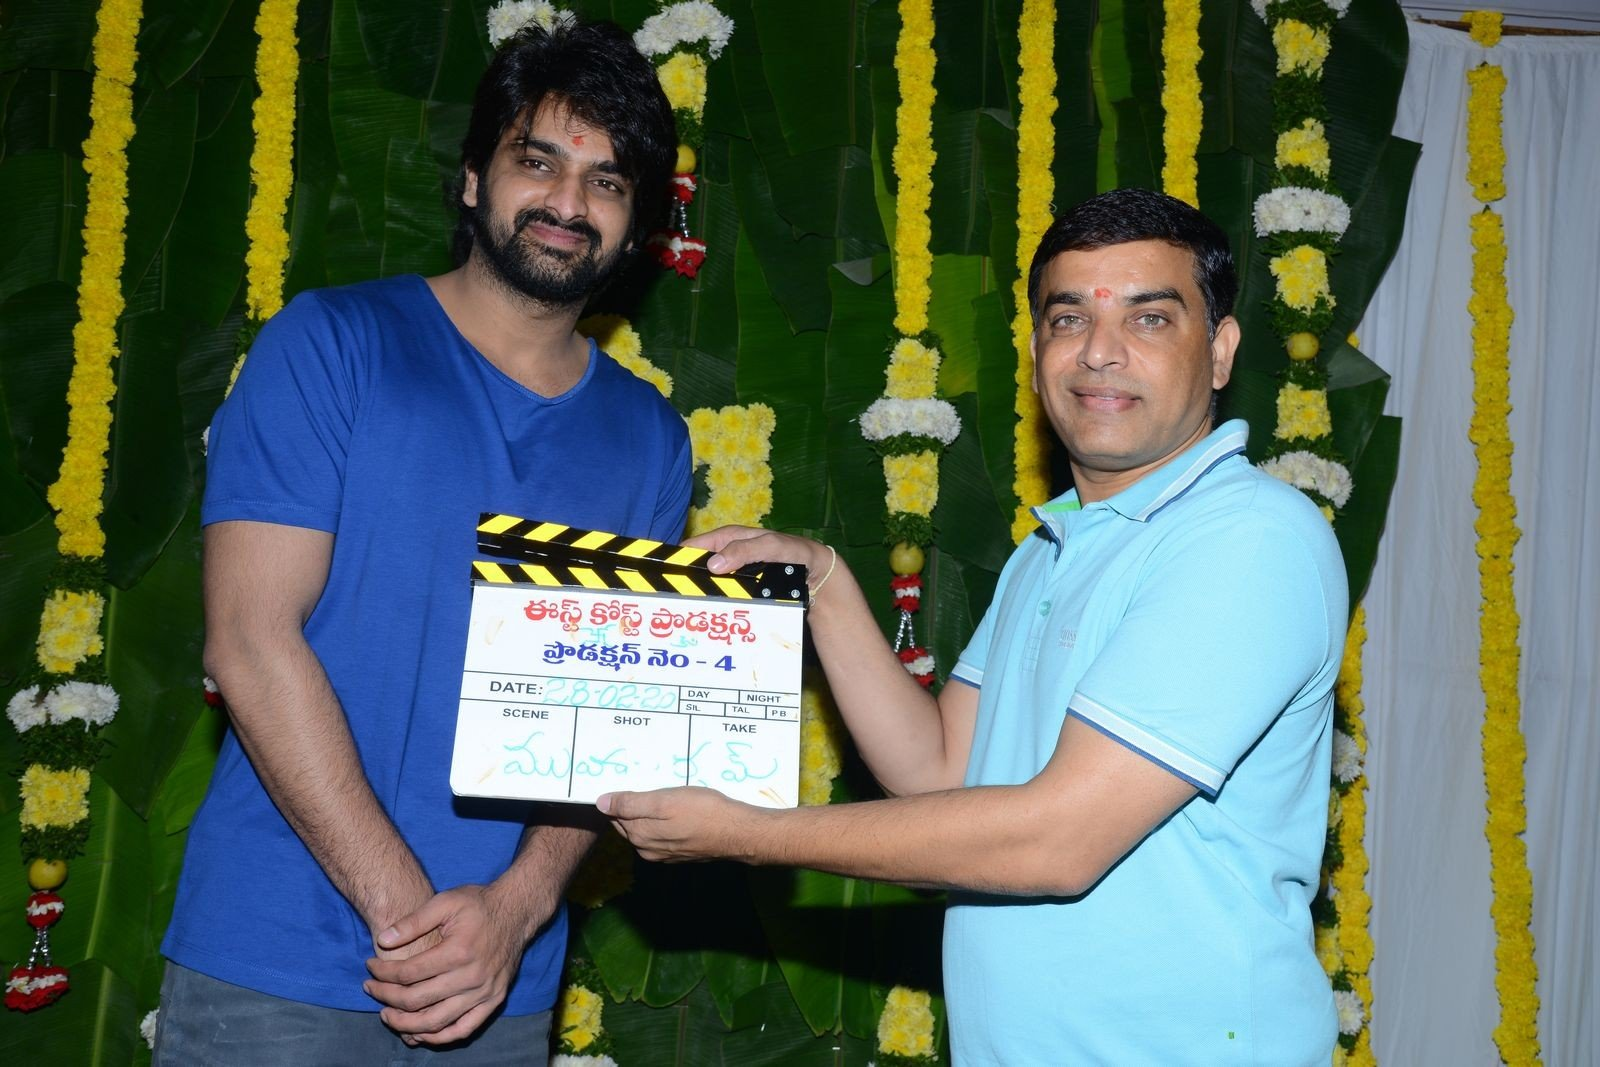 2-<p>Nagashaurya's new film</p>